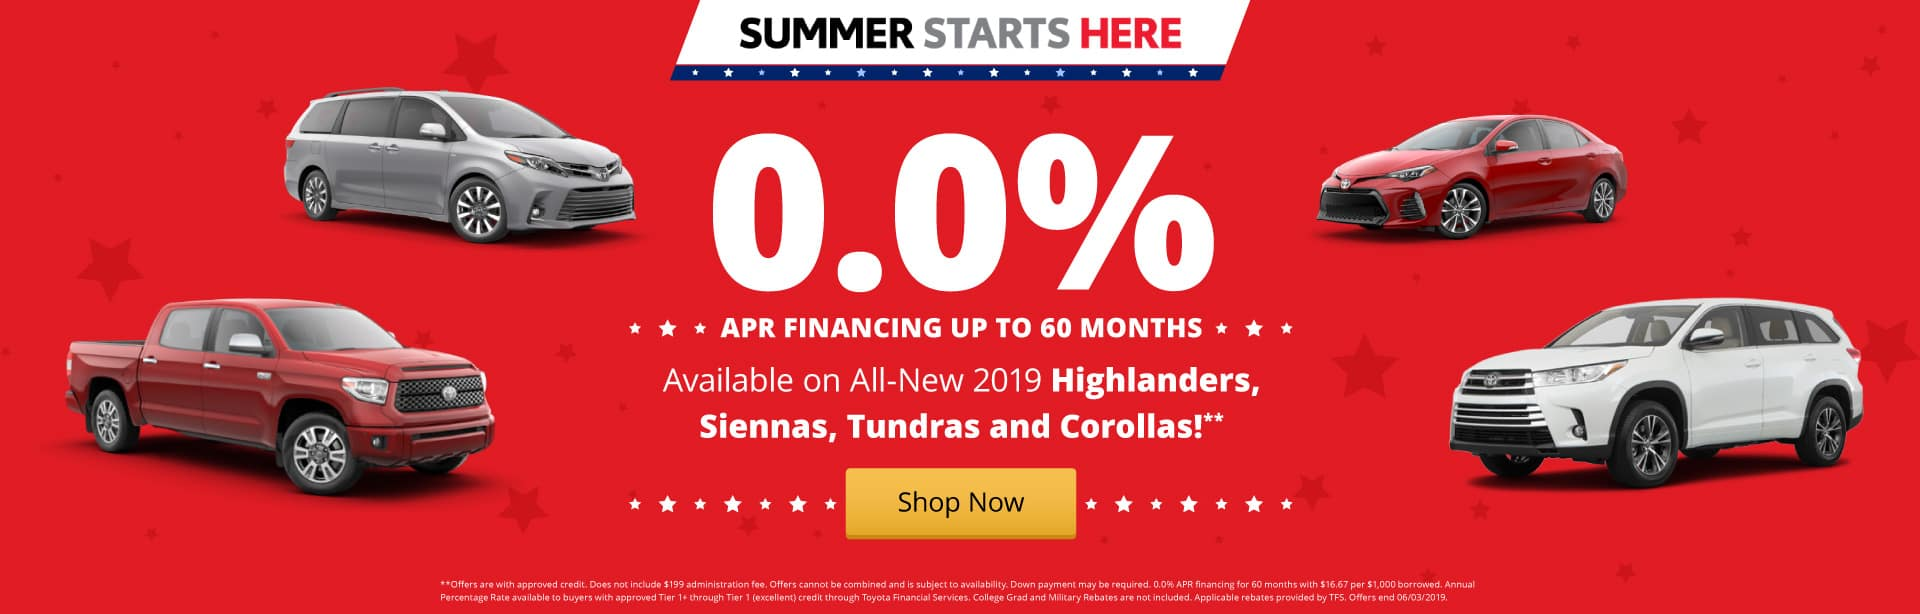 0% APR financing available on select Toyotas